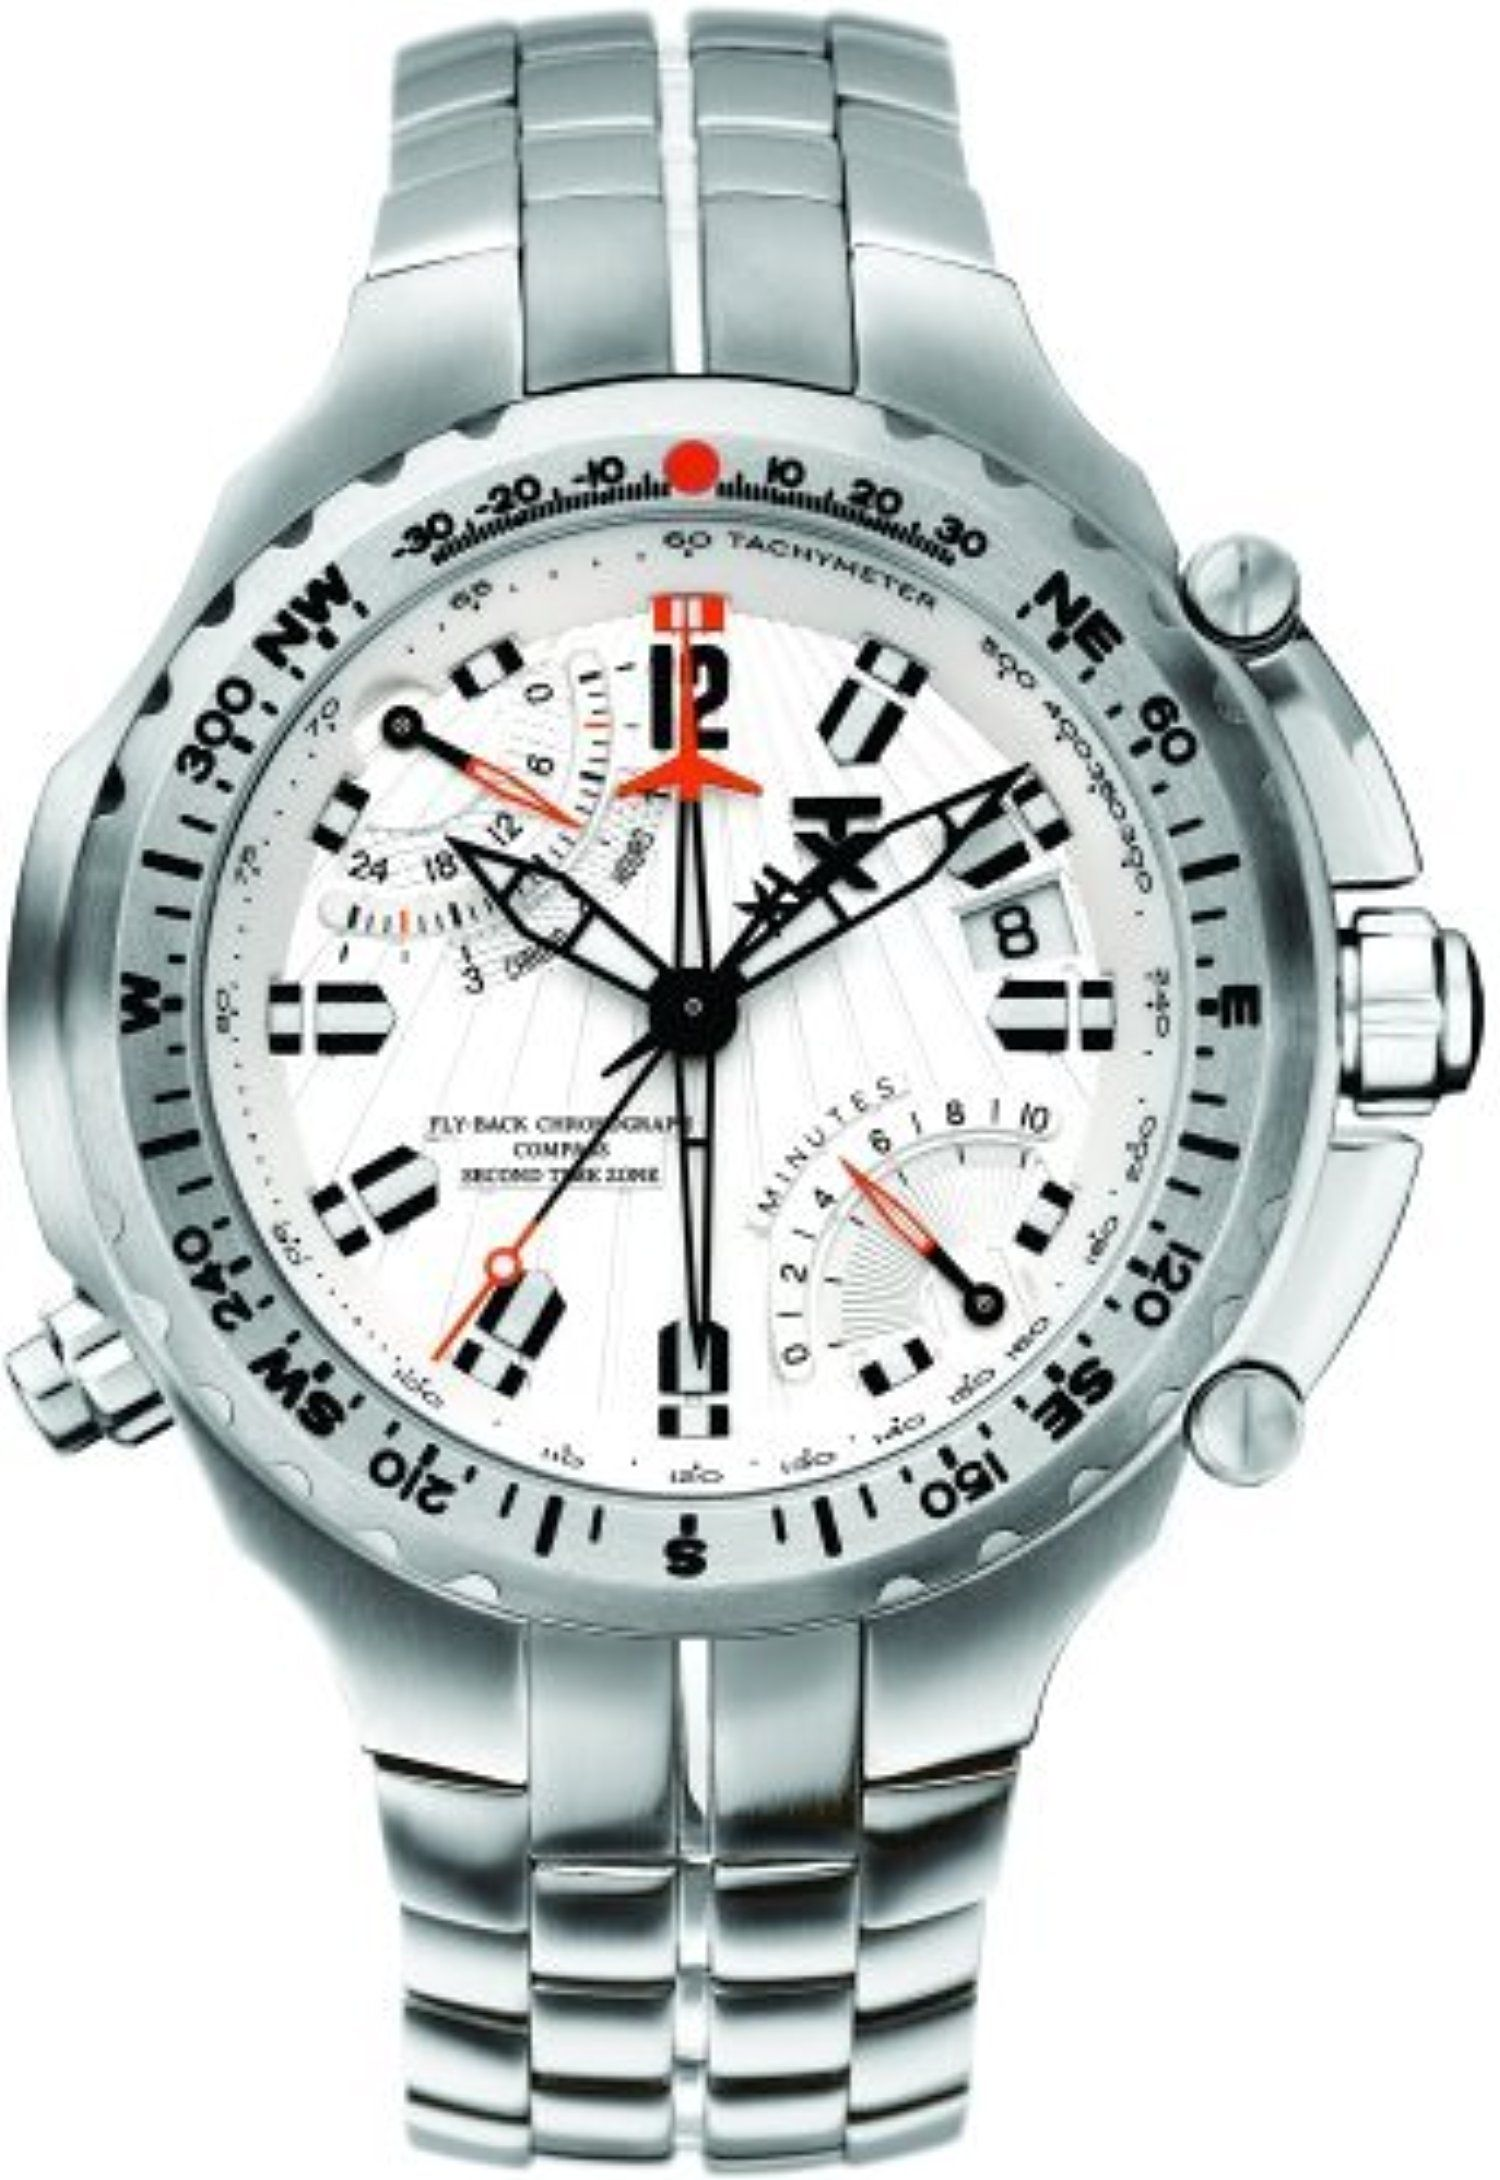 TX Men's T3B861 700 Series Sport Flyback Chronograph Dual